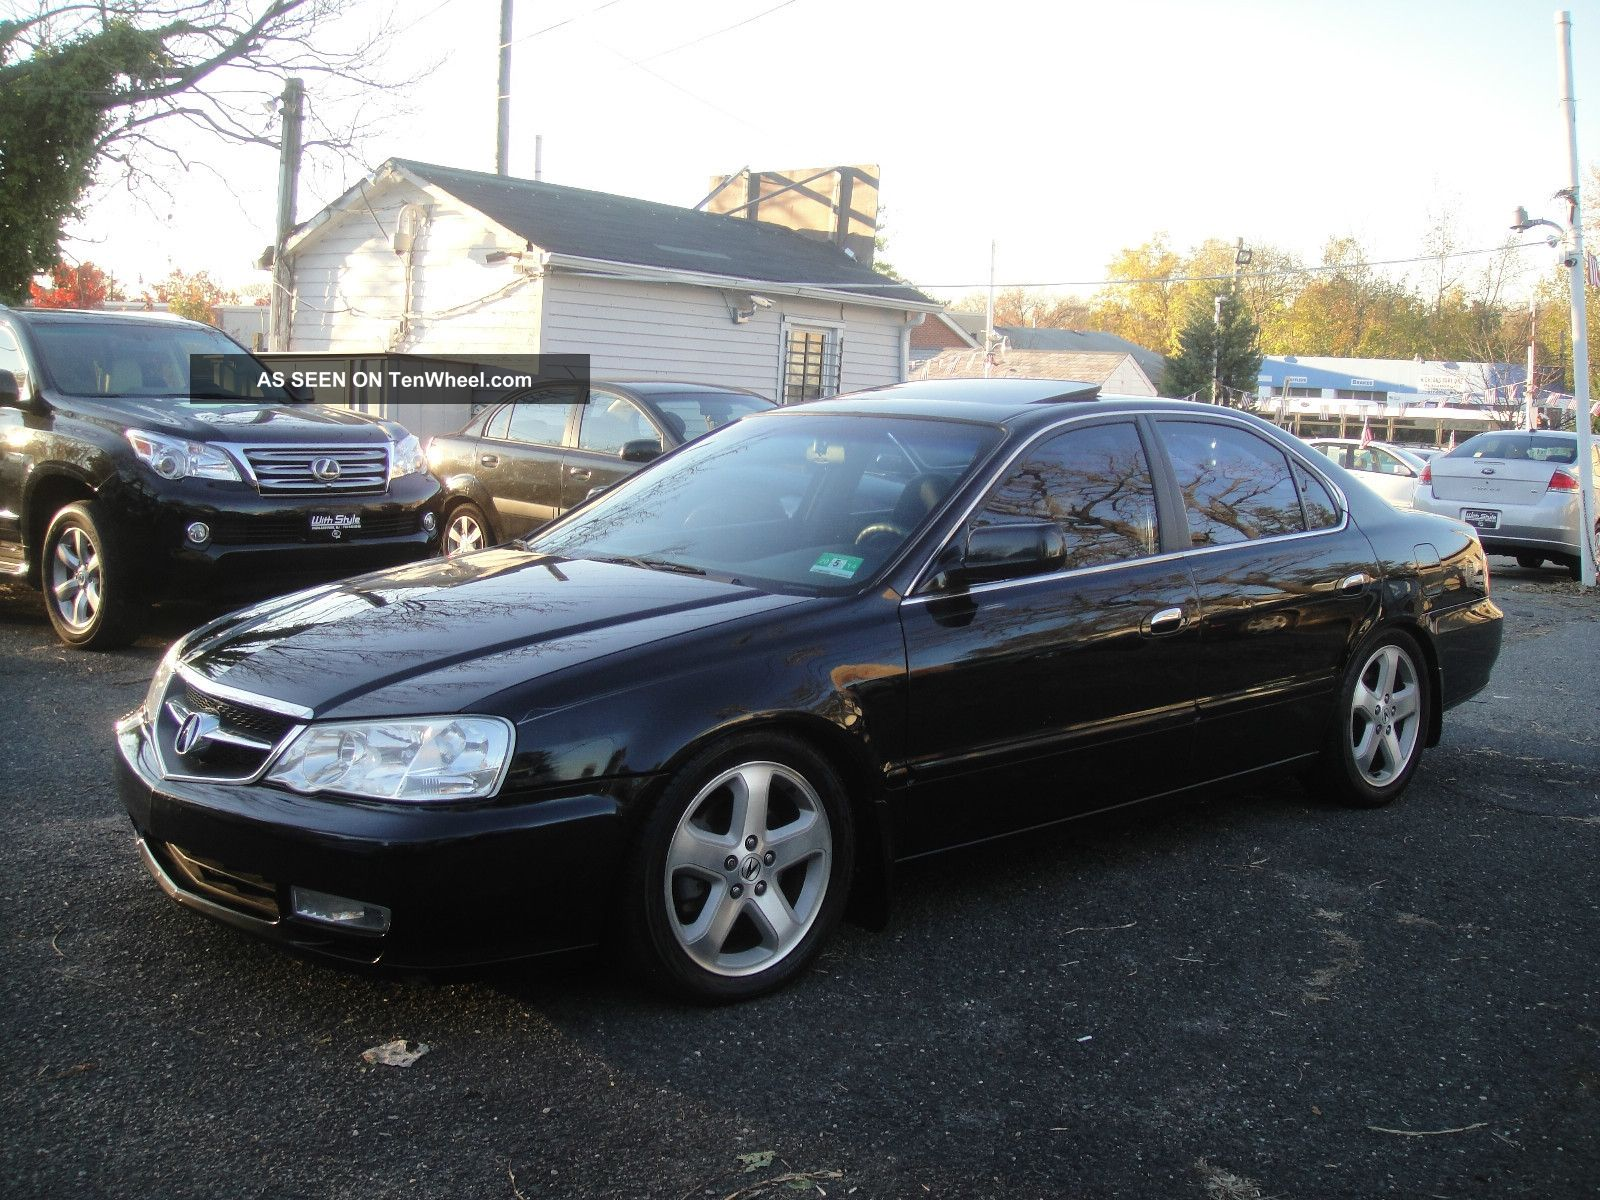 Acura Tl Ii Pictures Information And Specs AutoDatabasecom - 2002 acura tl rims